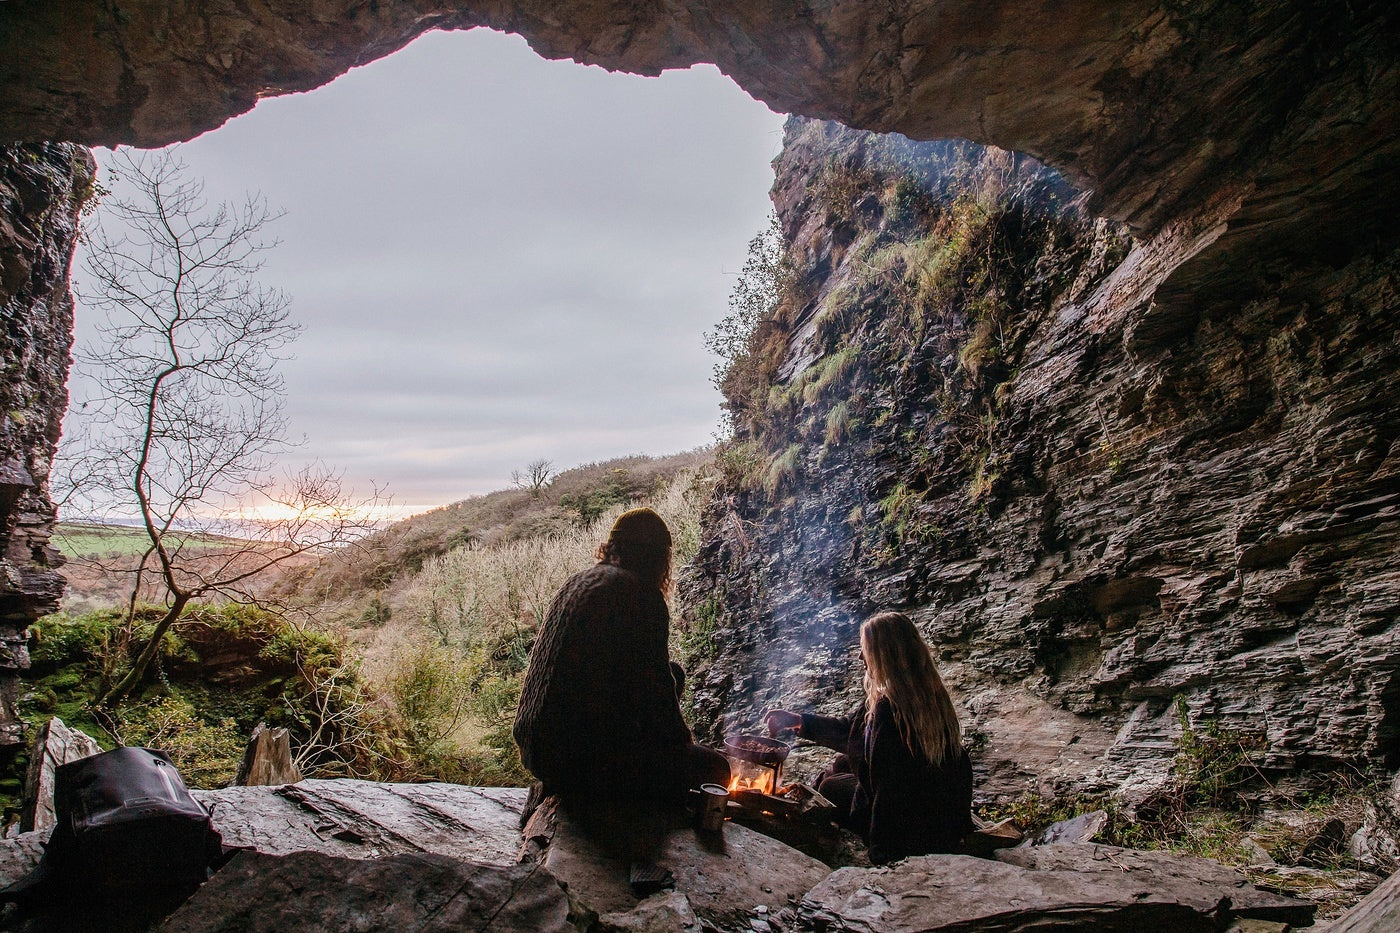 Man and woman set a campfire in a cave as the sun goes down